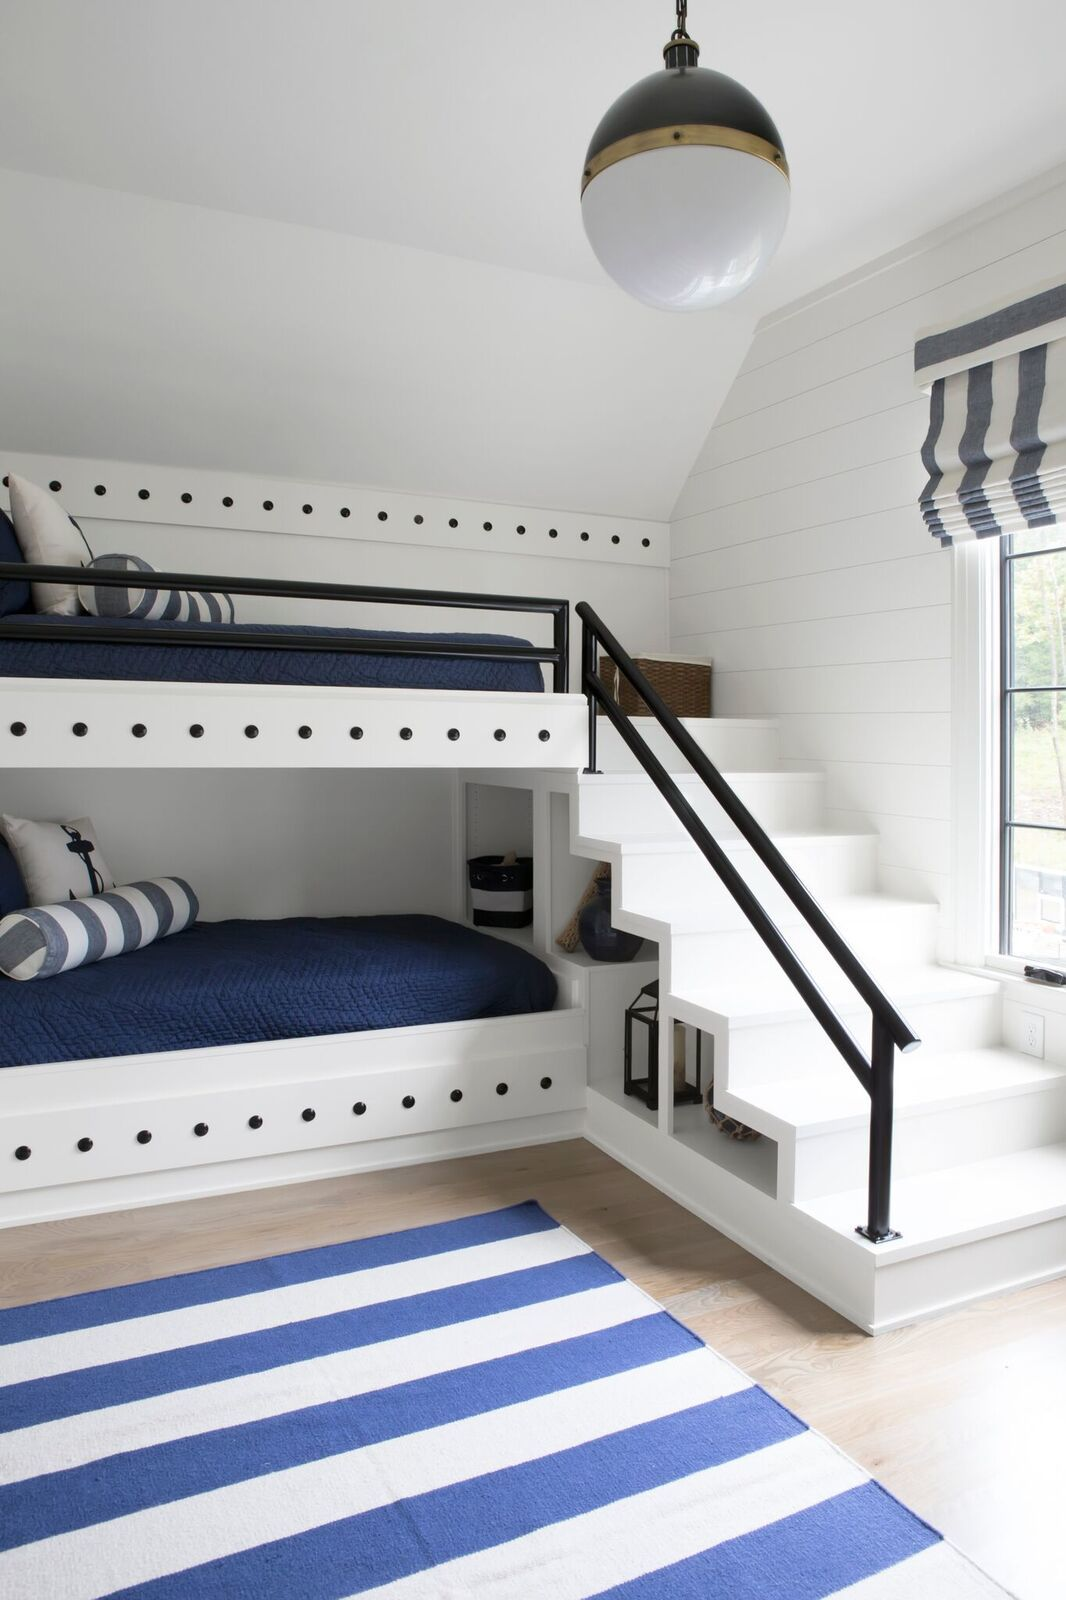 The bunk room, with its navy and white color scheme, is an ode to the homeowners' favorite place: the beach.